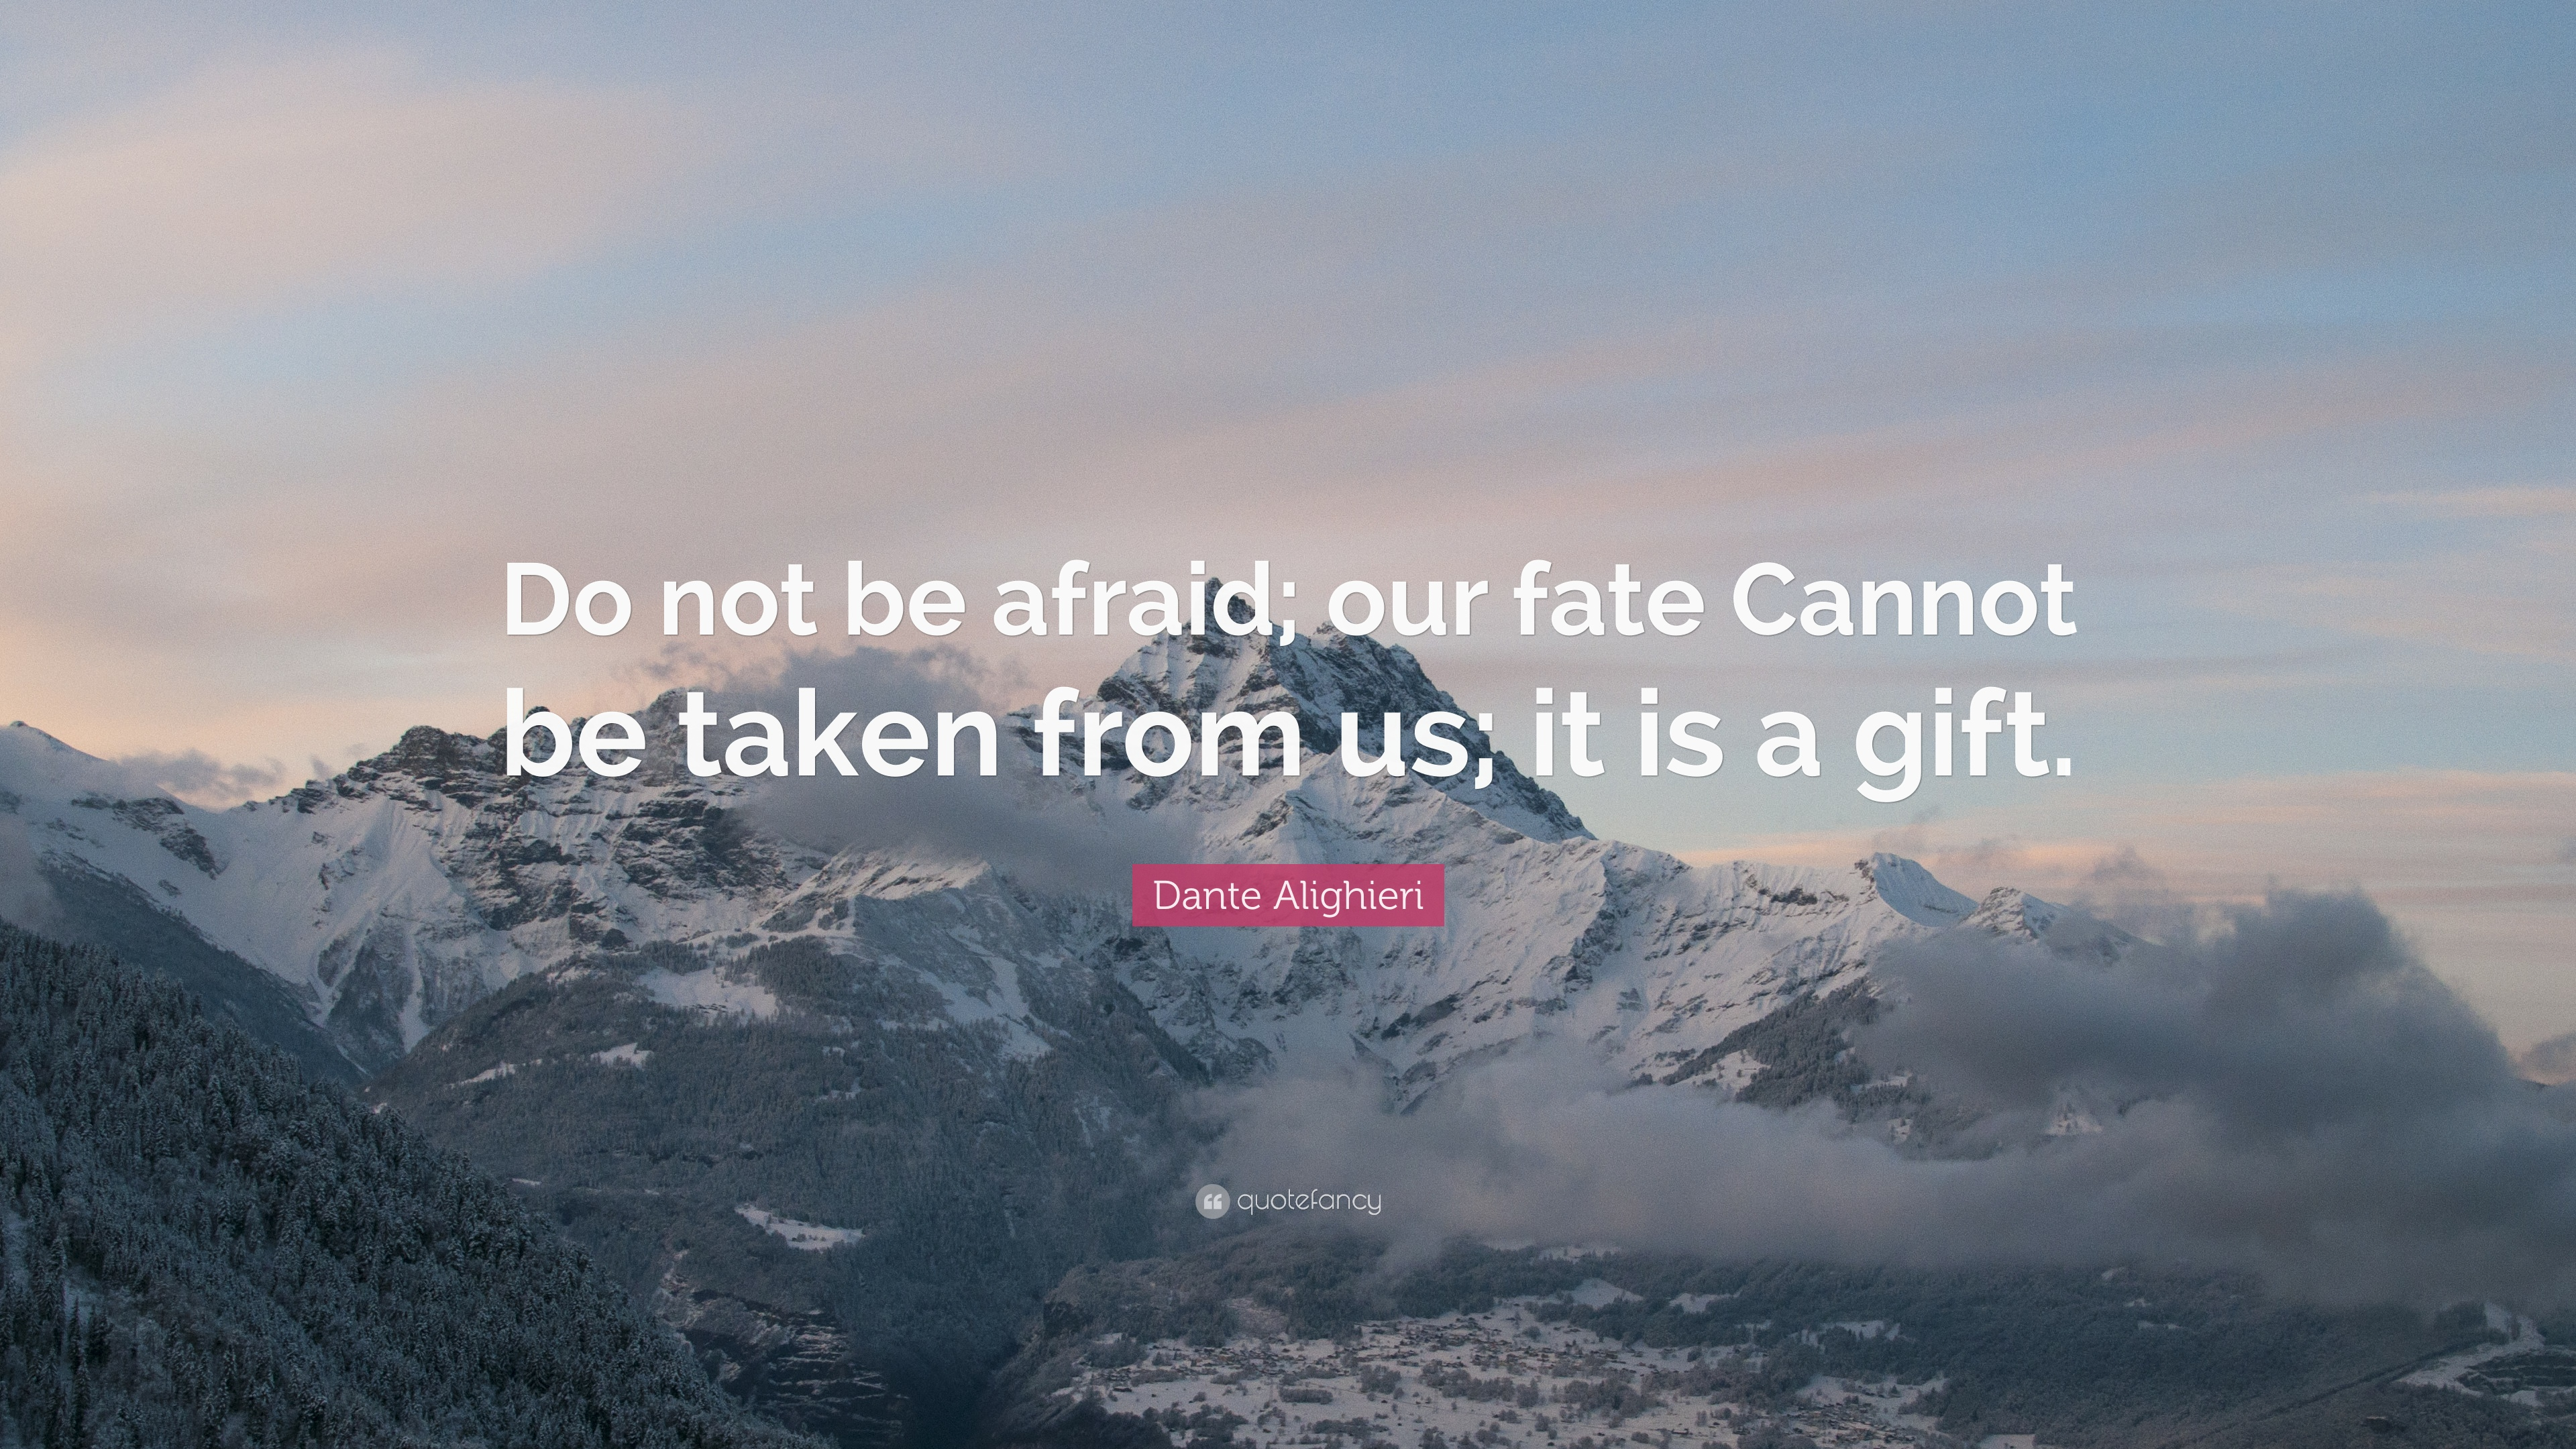 679ea6895607f Fate Quotes (40 wallpapers) - Quotefancy